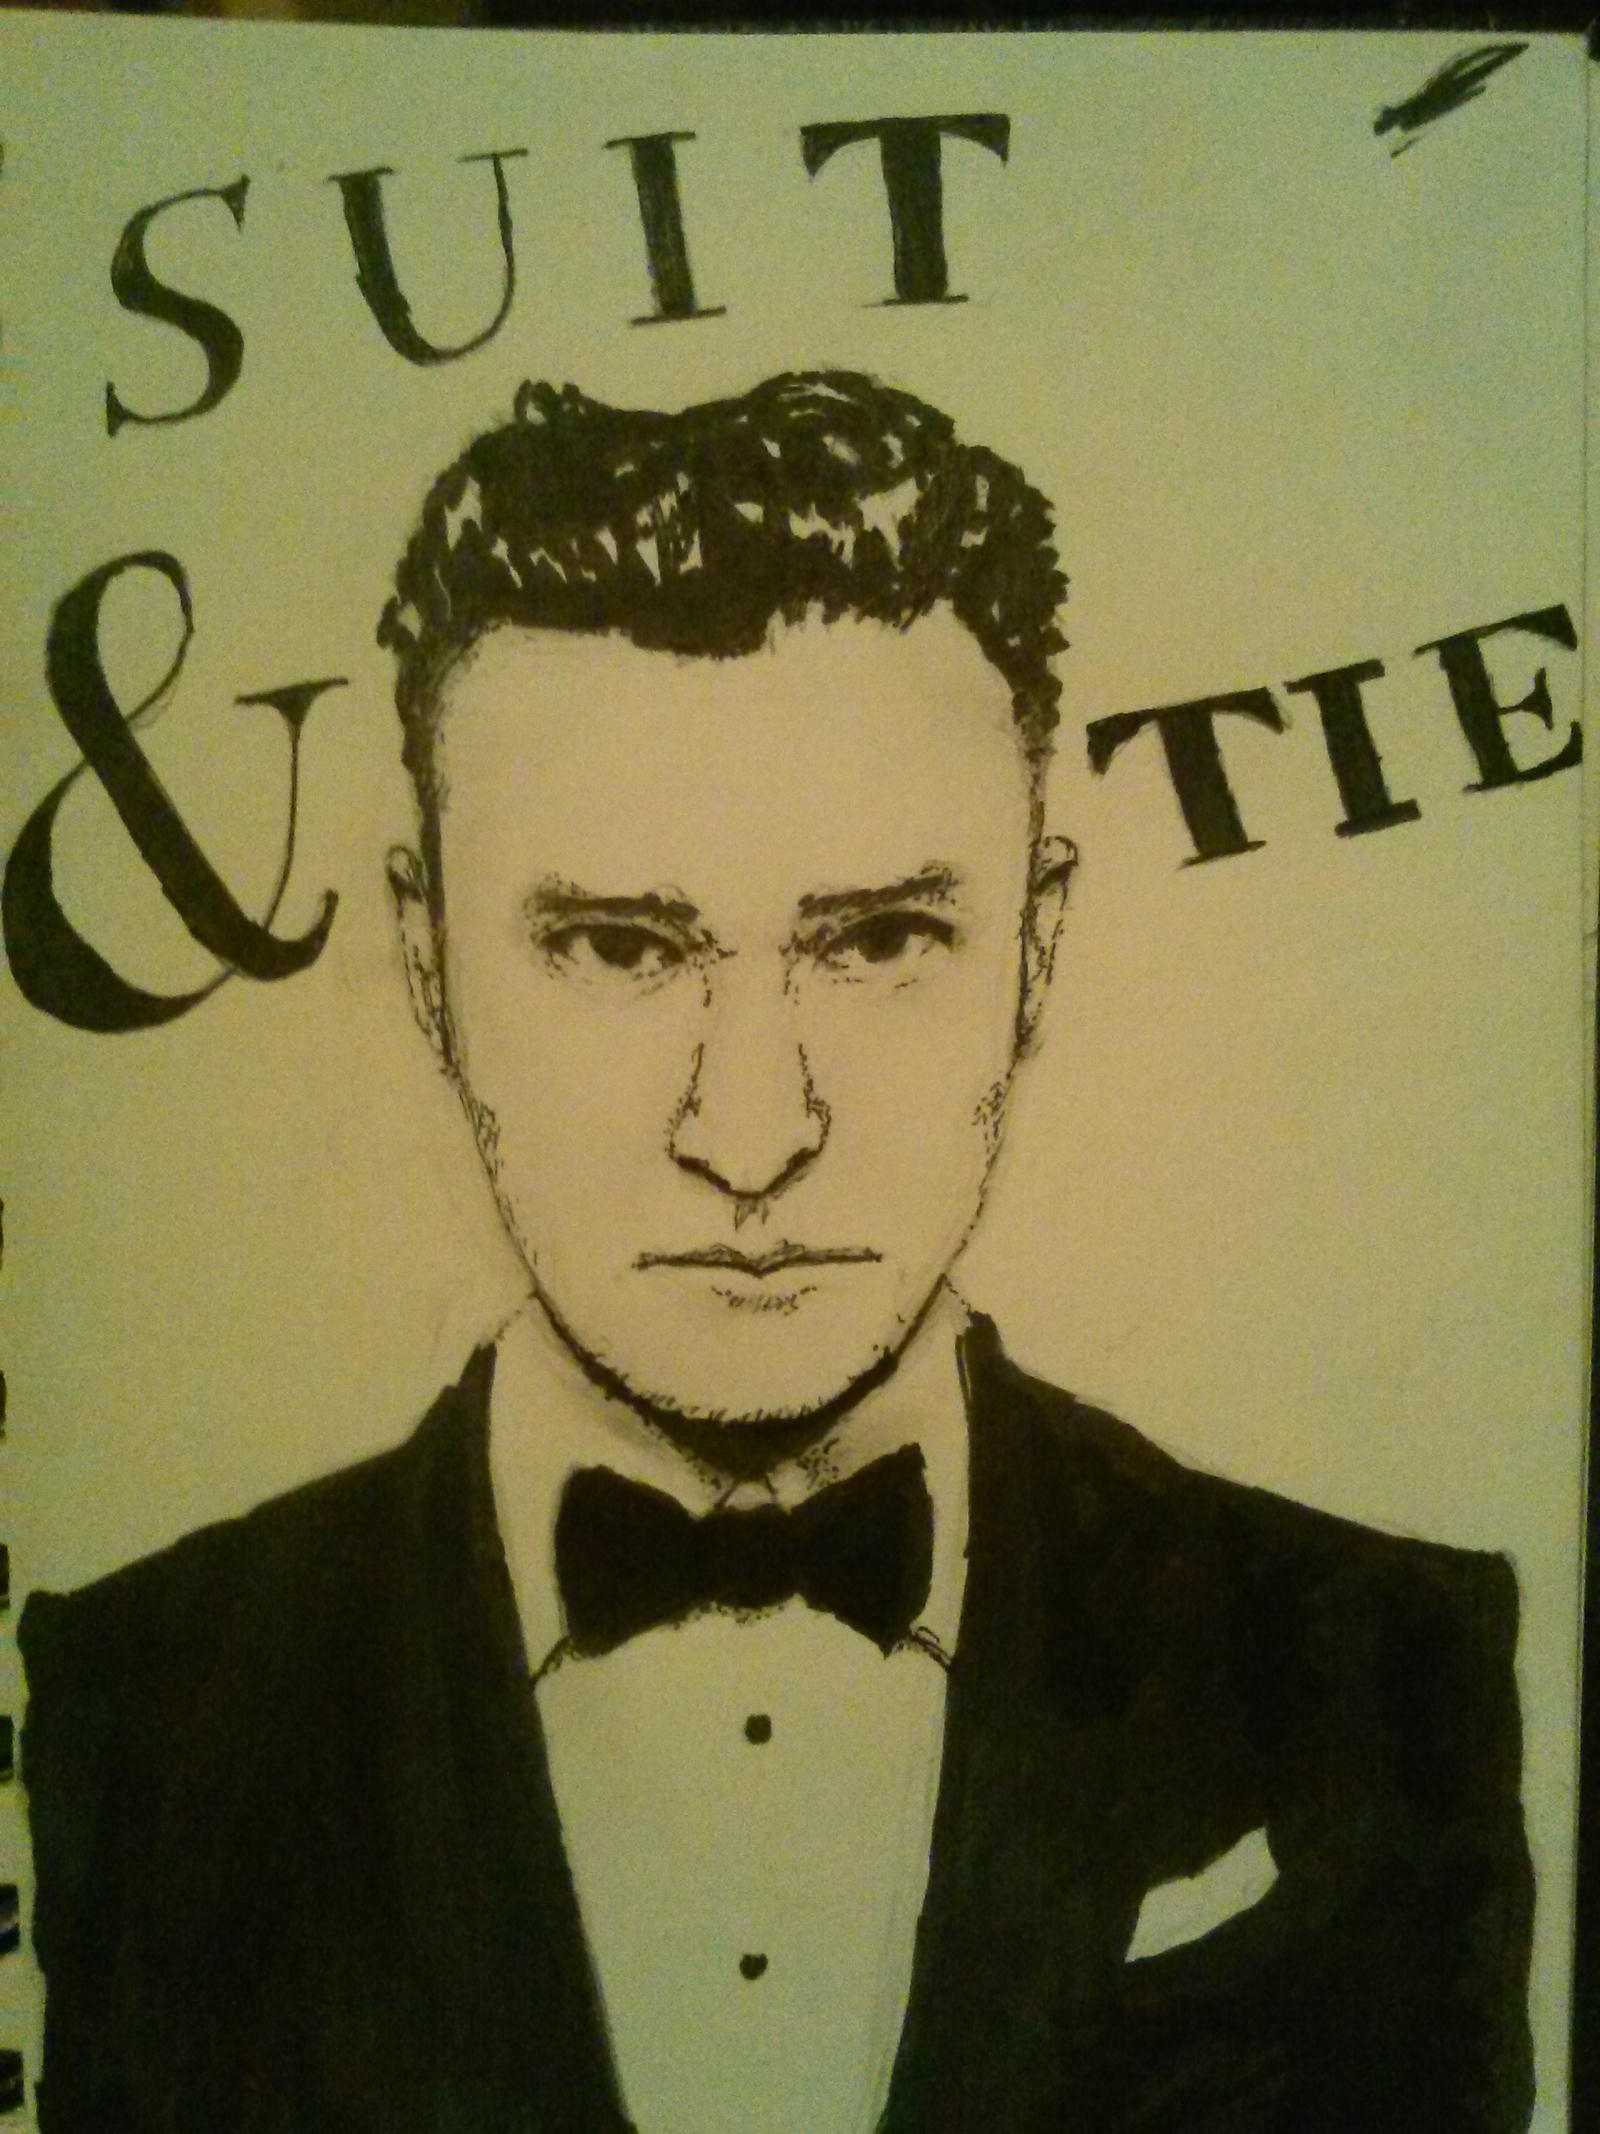 Justin Timberlake suit and tie by DillanMurillo on DeviantArt